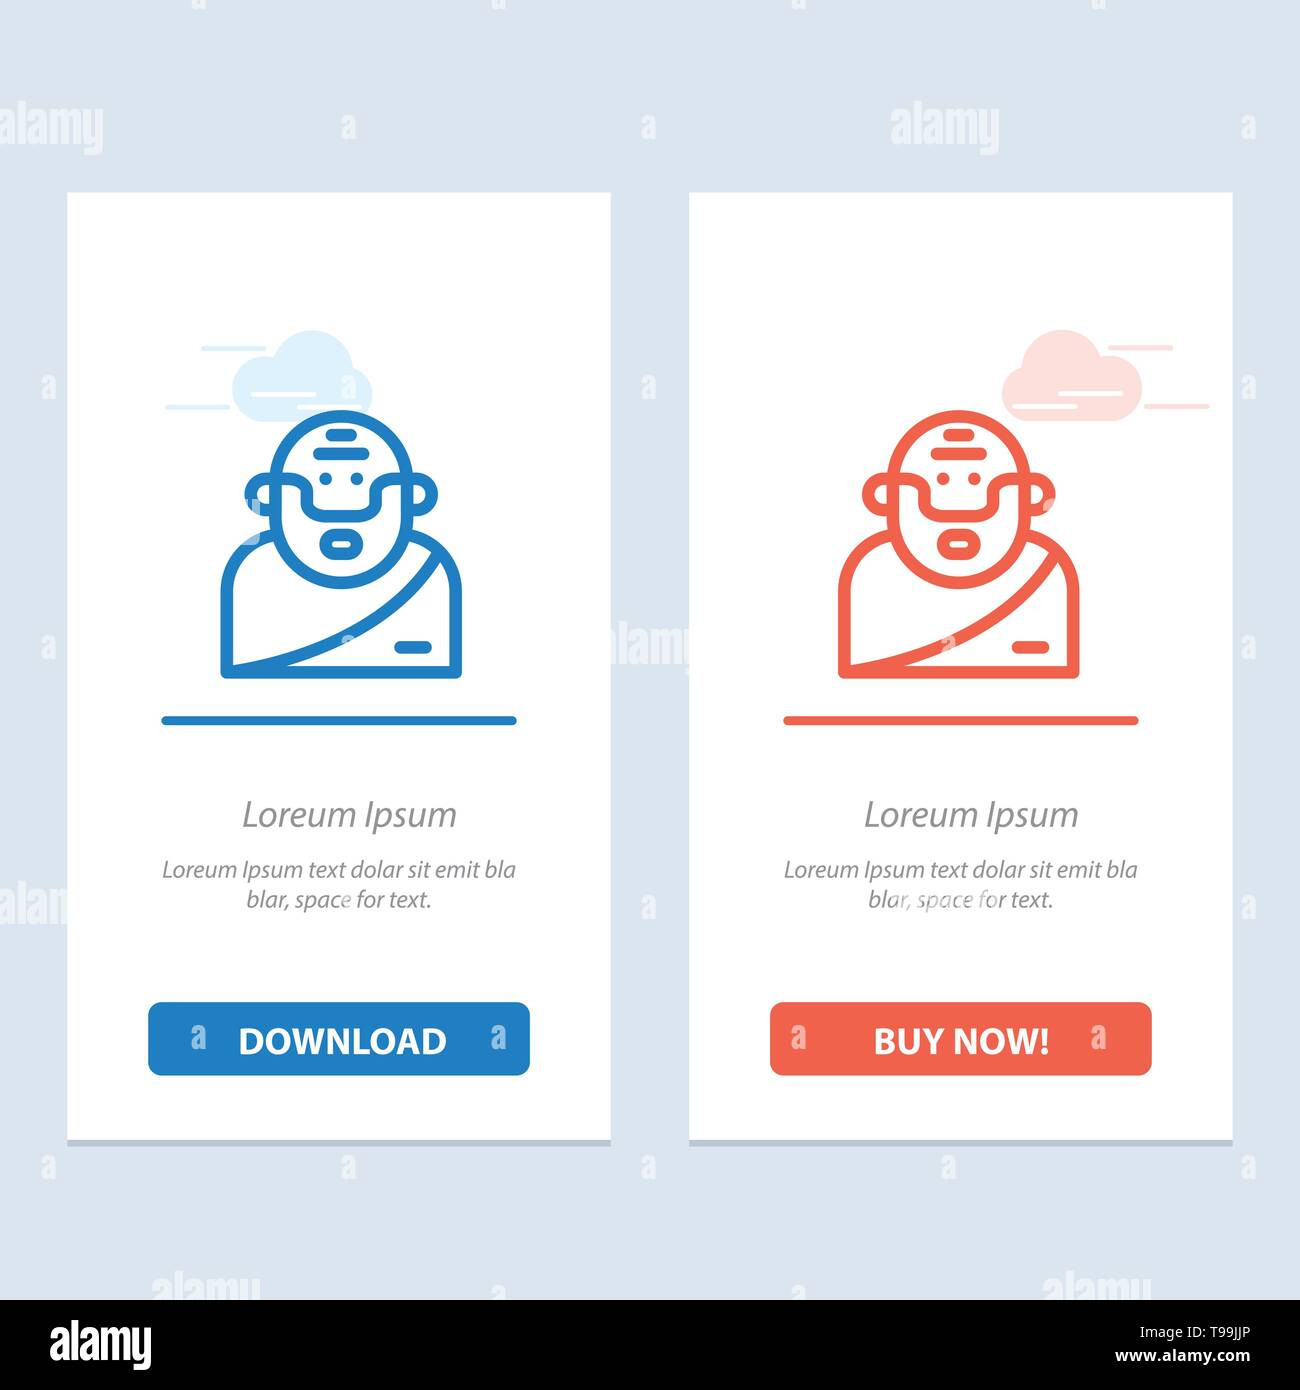 God, Greek, Mythology, Old  Blue and Red Download and Buy Now web Widget Card Template - Stock Image